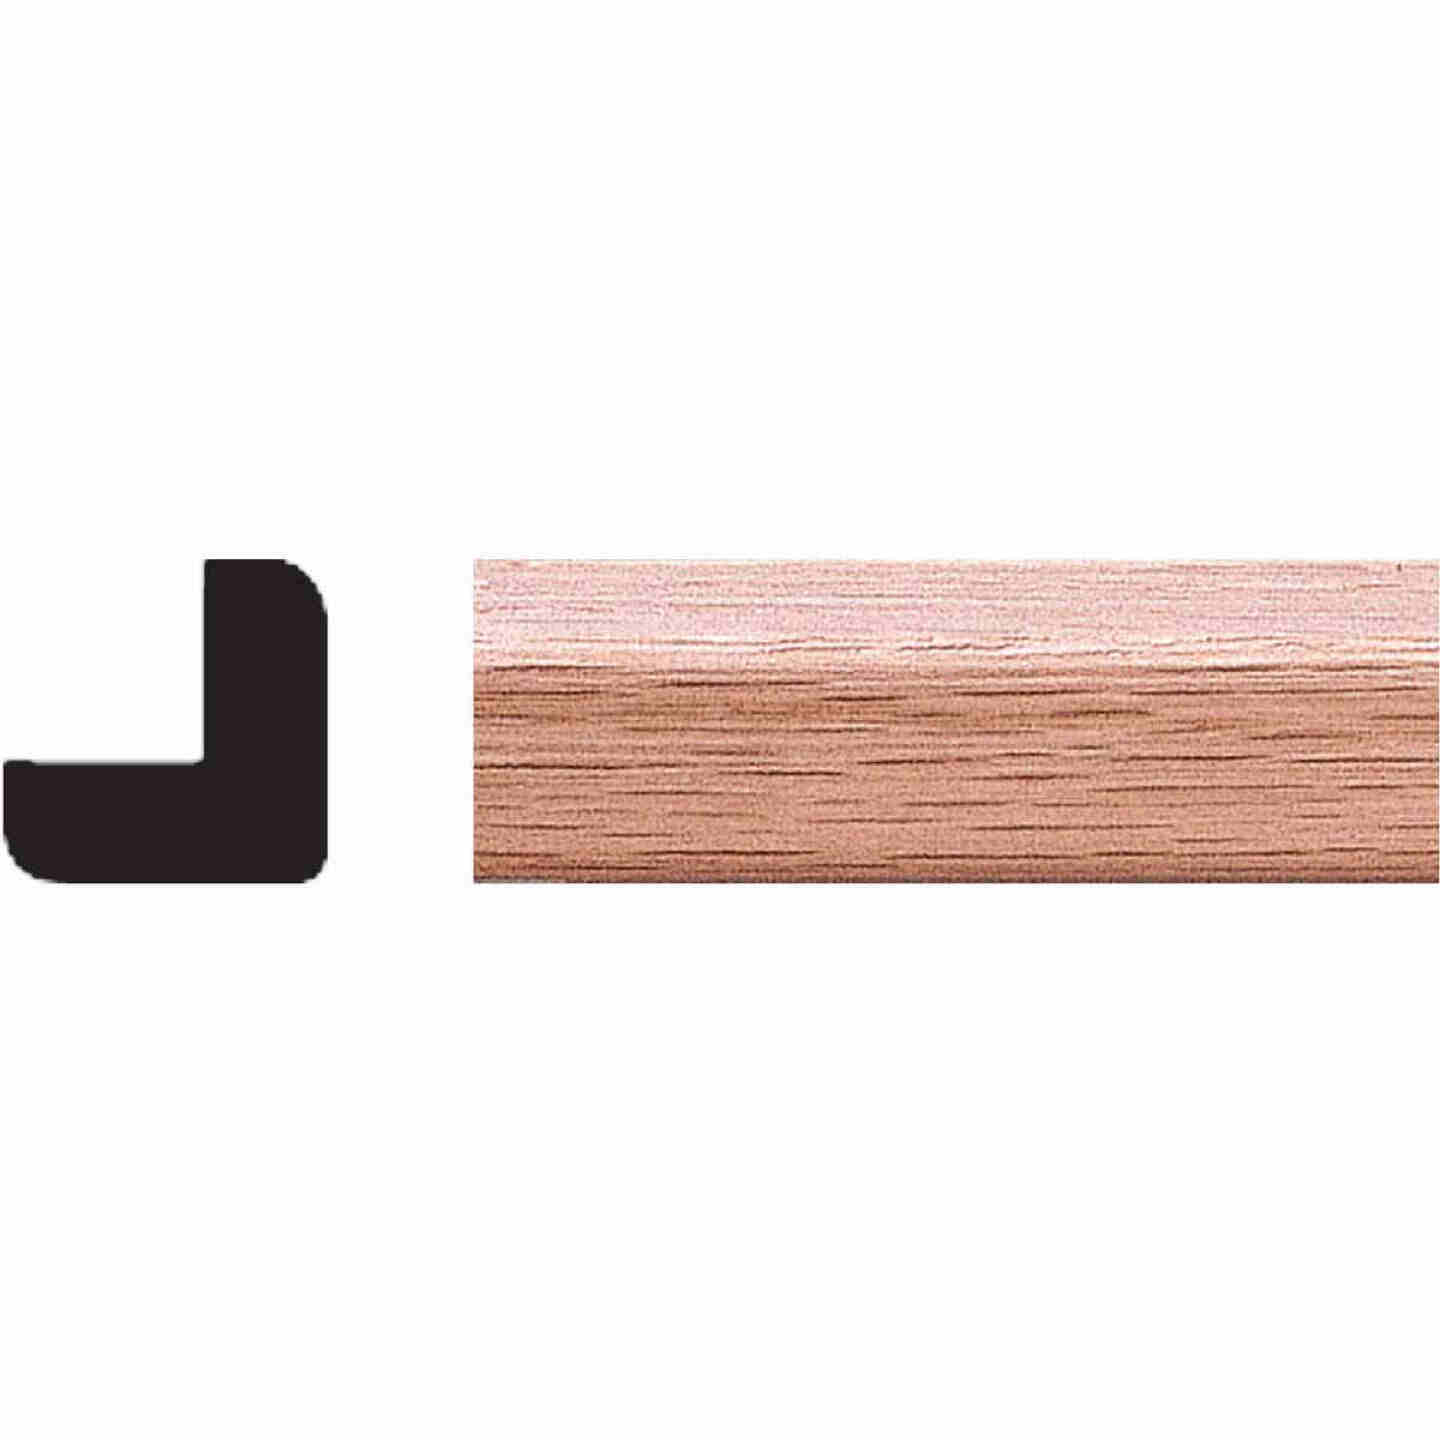 House of Fara 3/4 In. x 3/4 In. x 8 Ft. Solid Red Oak Outside Corner Molding Image 1